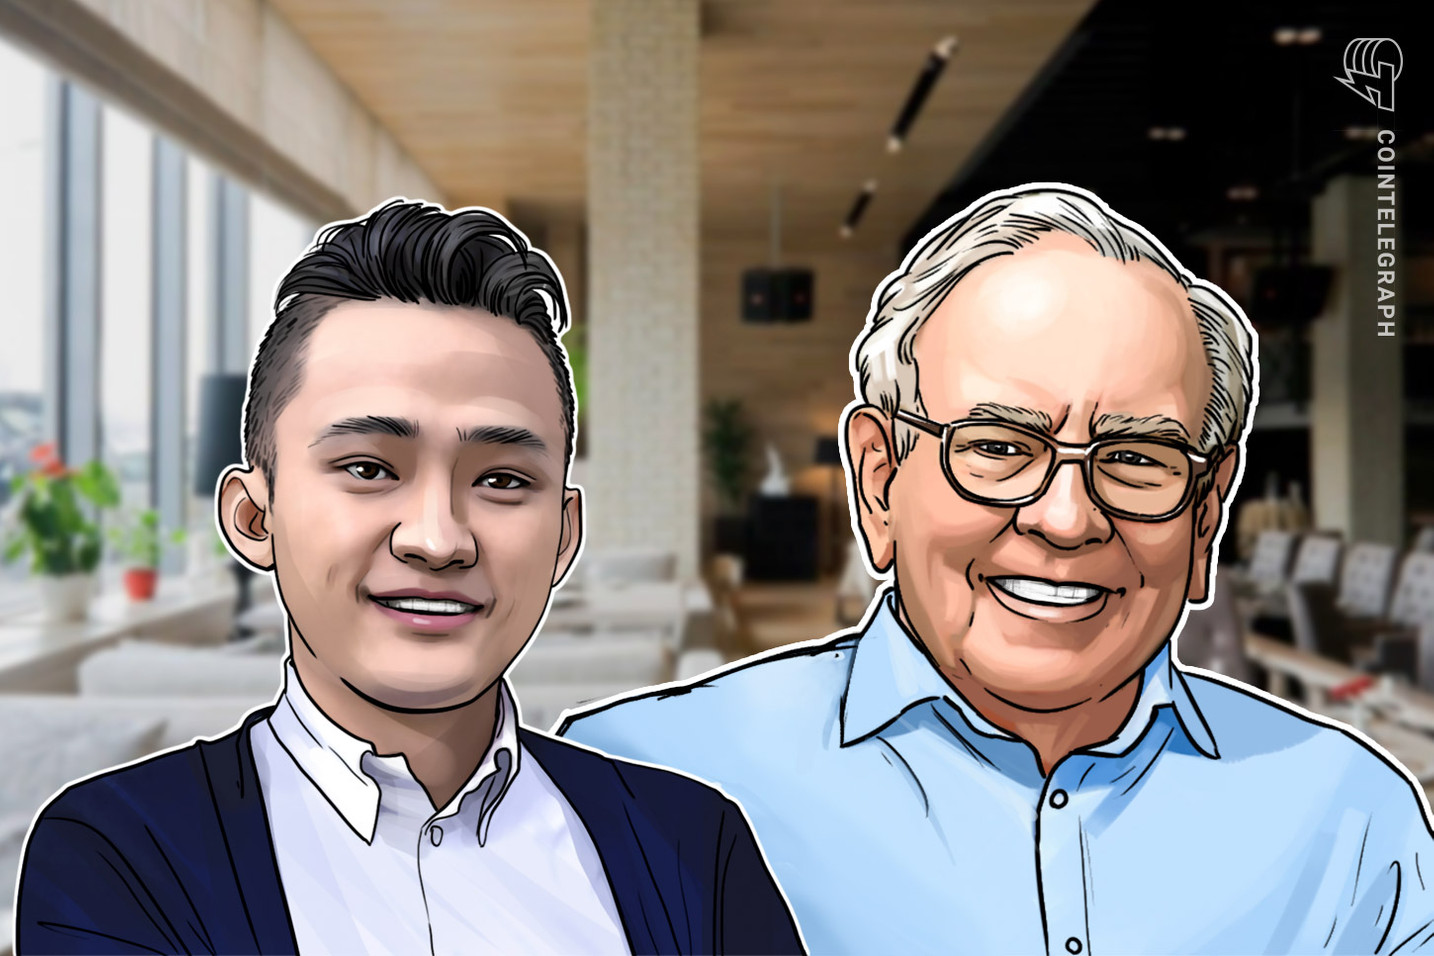 Tron Founder Justin Sun Finally Met With Warren Buffett for Charity Lunch